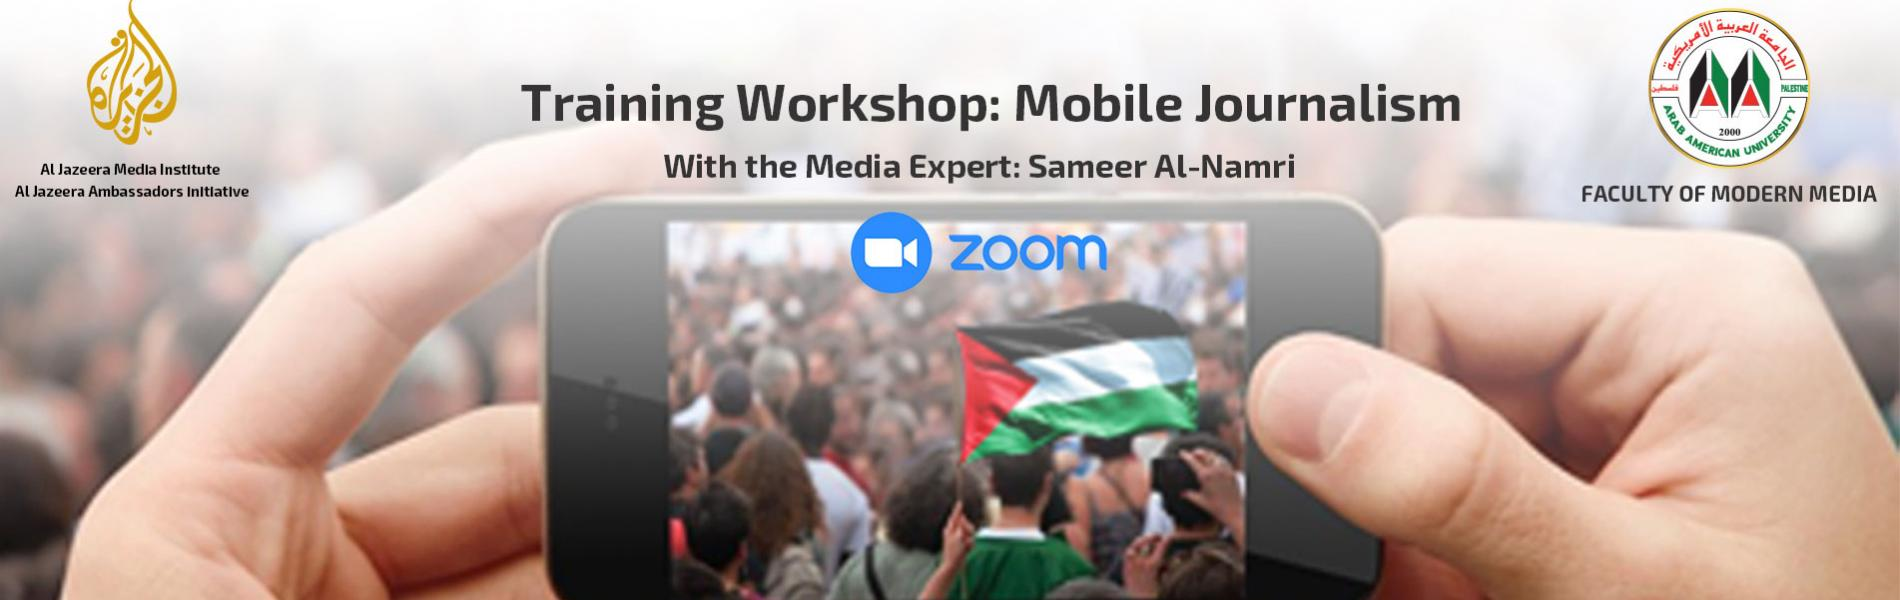 Announcement: A Mobile Journalism Course (through ZOOM) under Collaboration with Al Jazeera Media Institute